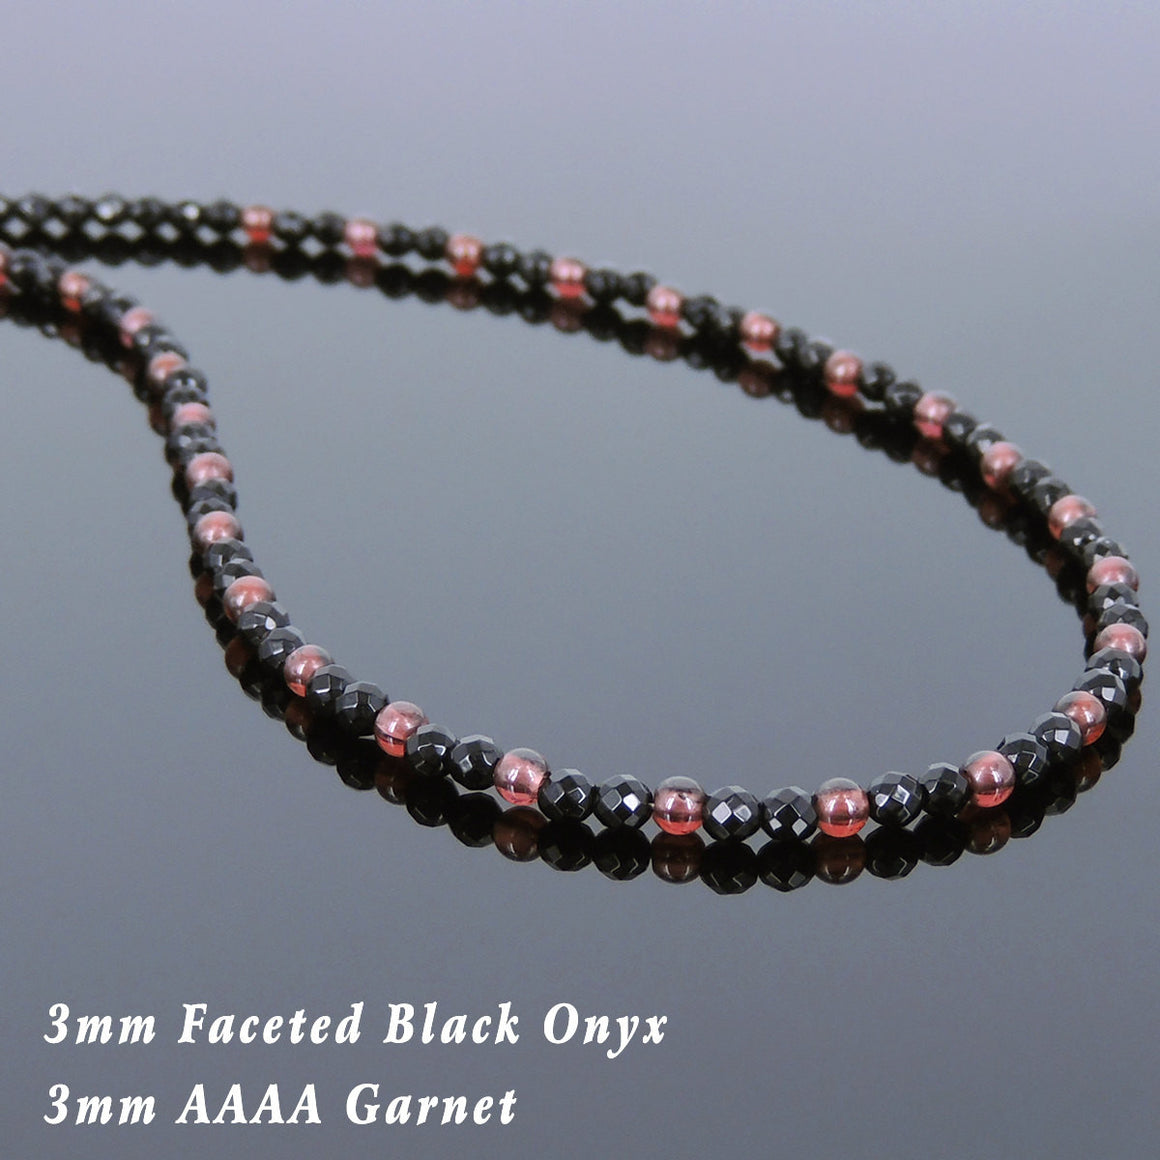 Grade AAAA Natural Garnet & Faceted Black Onyx Healing Gemstone Necklace with S925 Sterling Silver Spacer Beads & Clasp - Handmade by Gem & Silver NK119